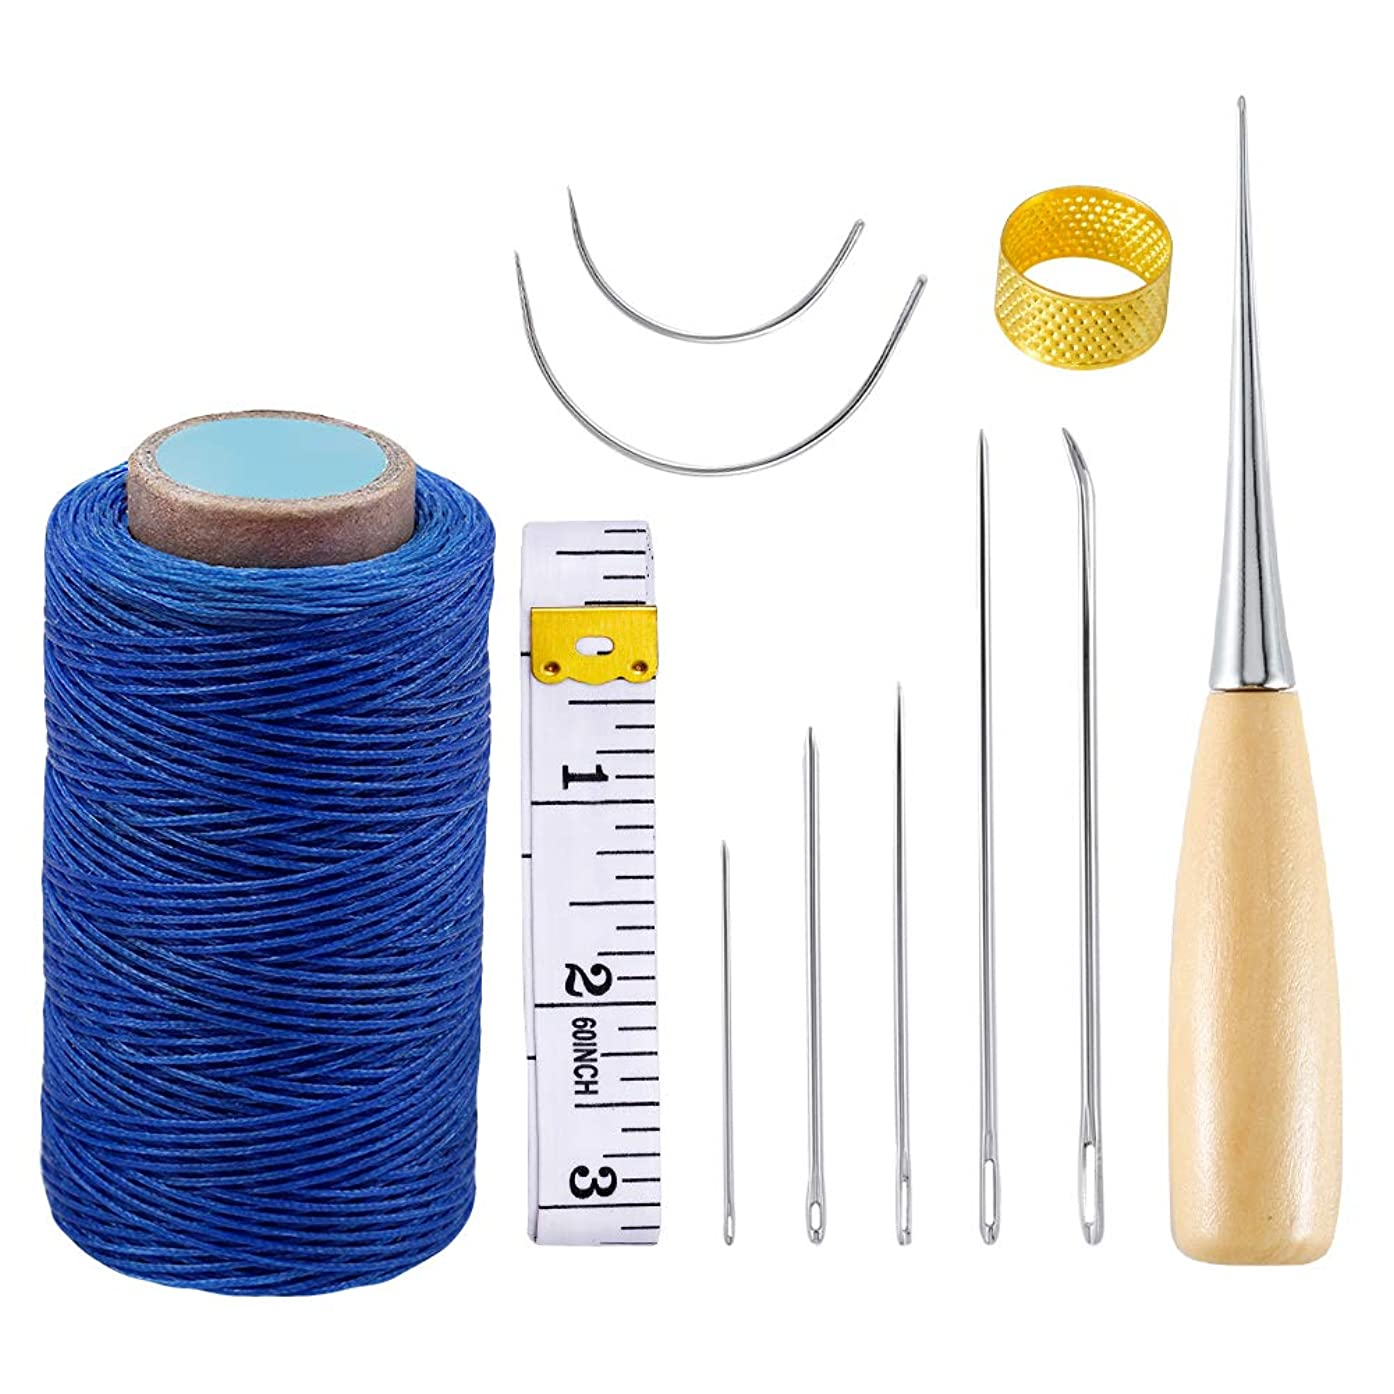 11Pcs Leather Craft Tool, 284yrd Heavy Duty Waxed Thread with Awl,Leather Sewing Needle,Sewing Waxed Coarse Whipping Thread for Leather Working,Leather Craft DIY (Blue)